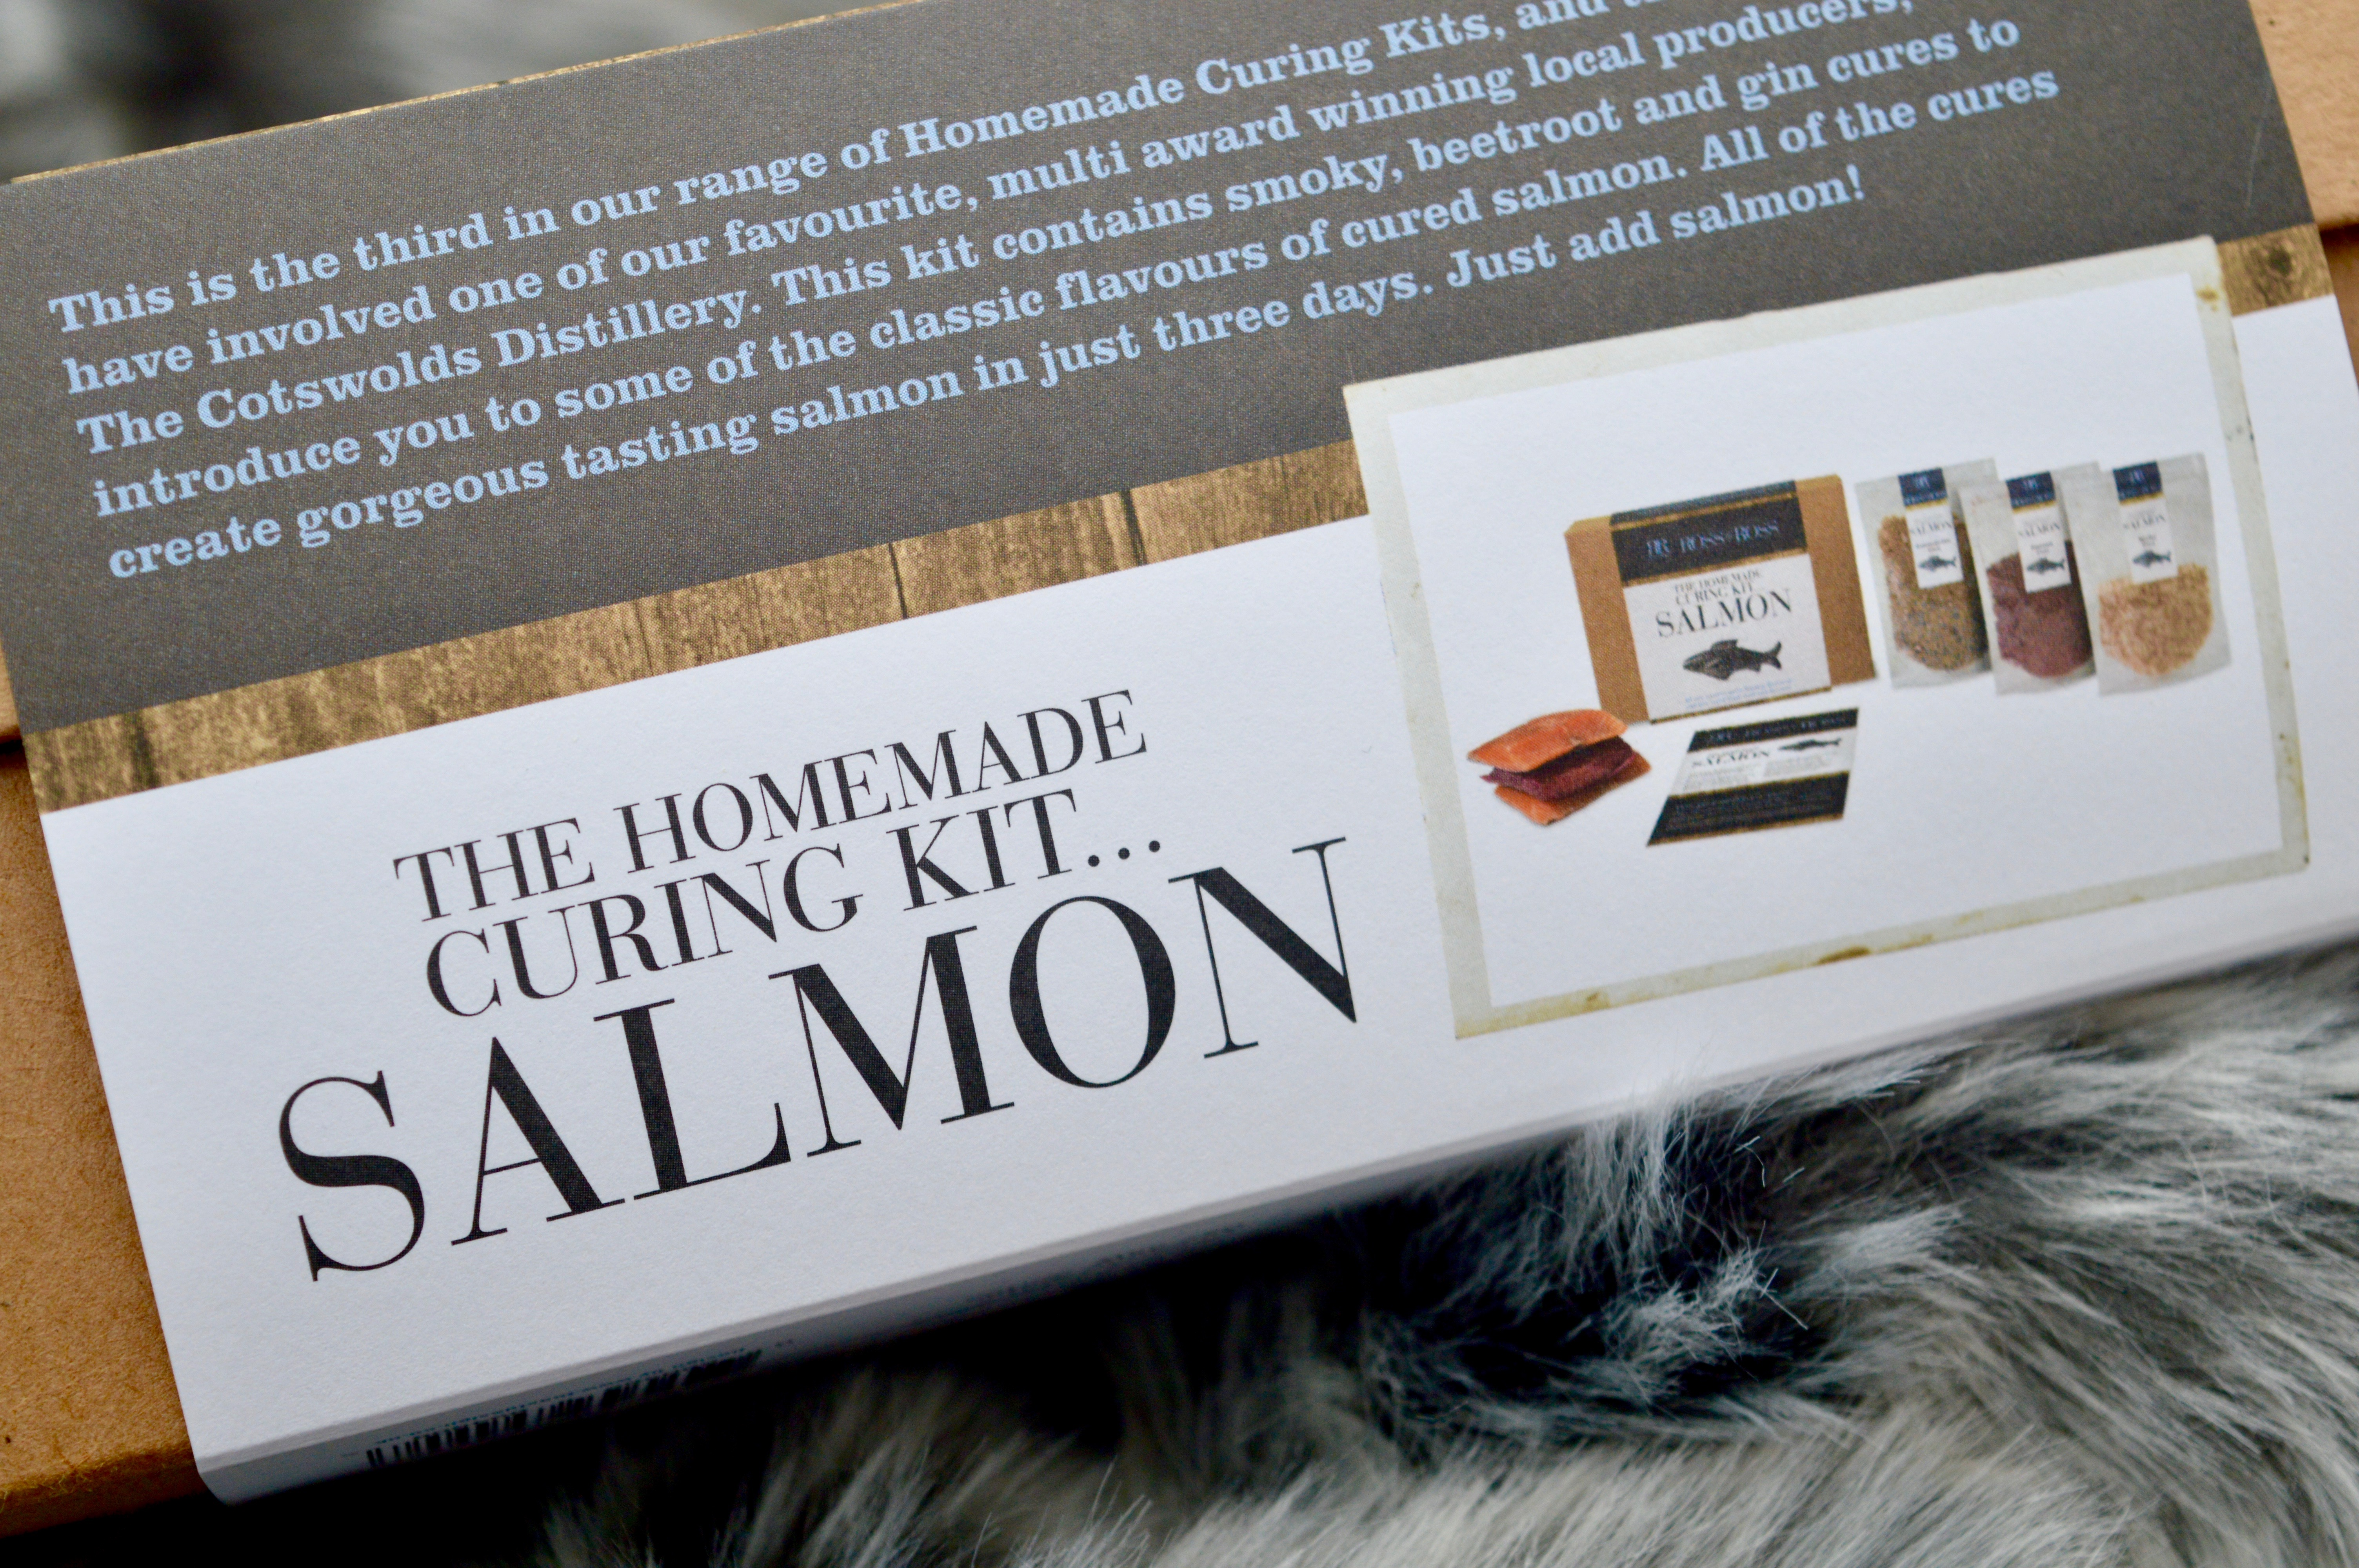 Salmon Curing Kit   Cooking Gifts   Food Lovers   Christmas Gift Guide - What to buy your Grandma   Elle Blonde Luxury Lifestyle Destination Blog